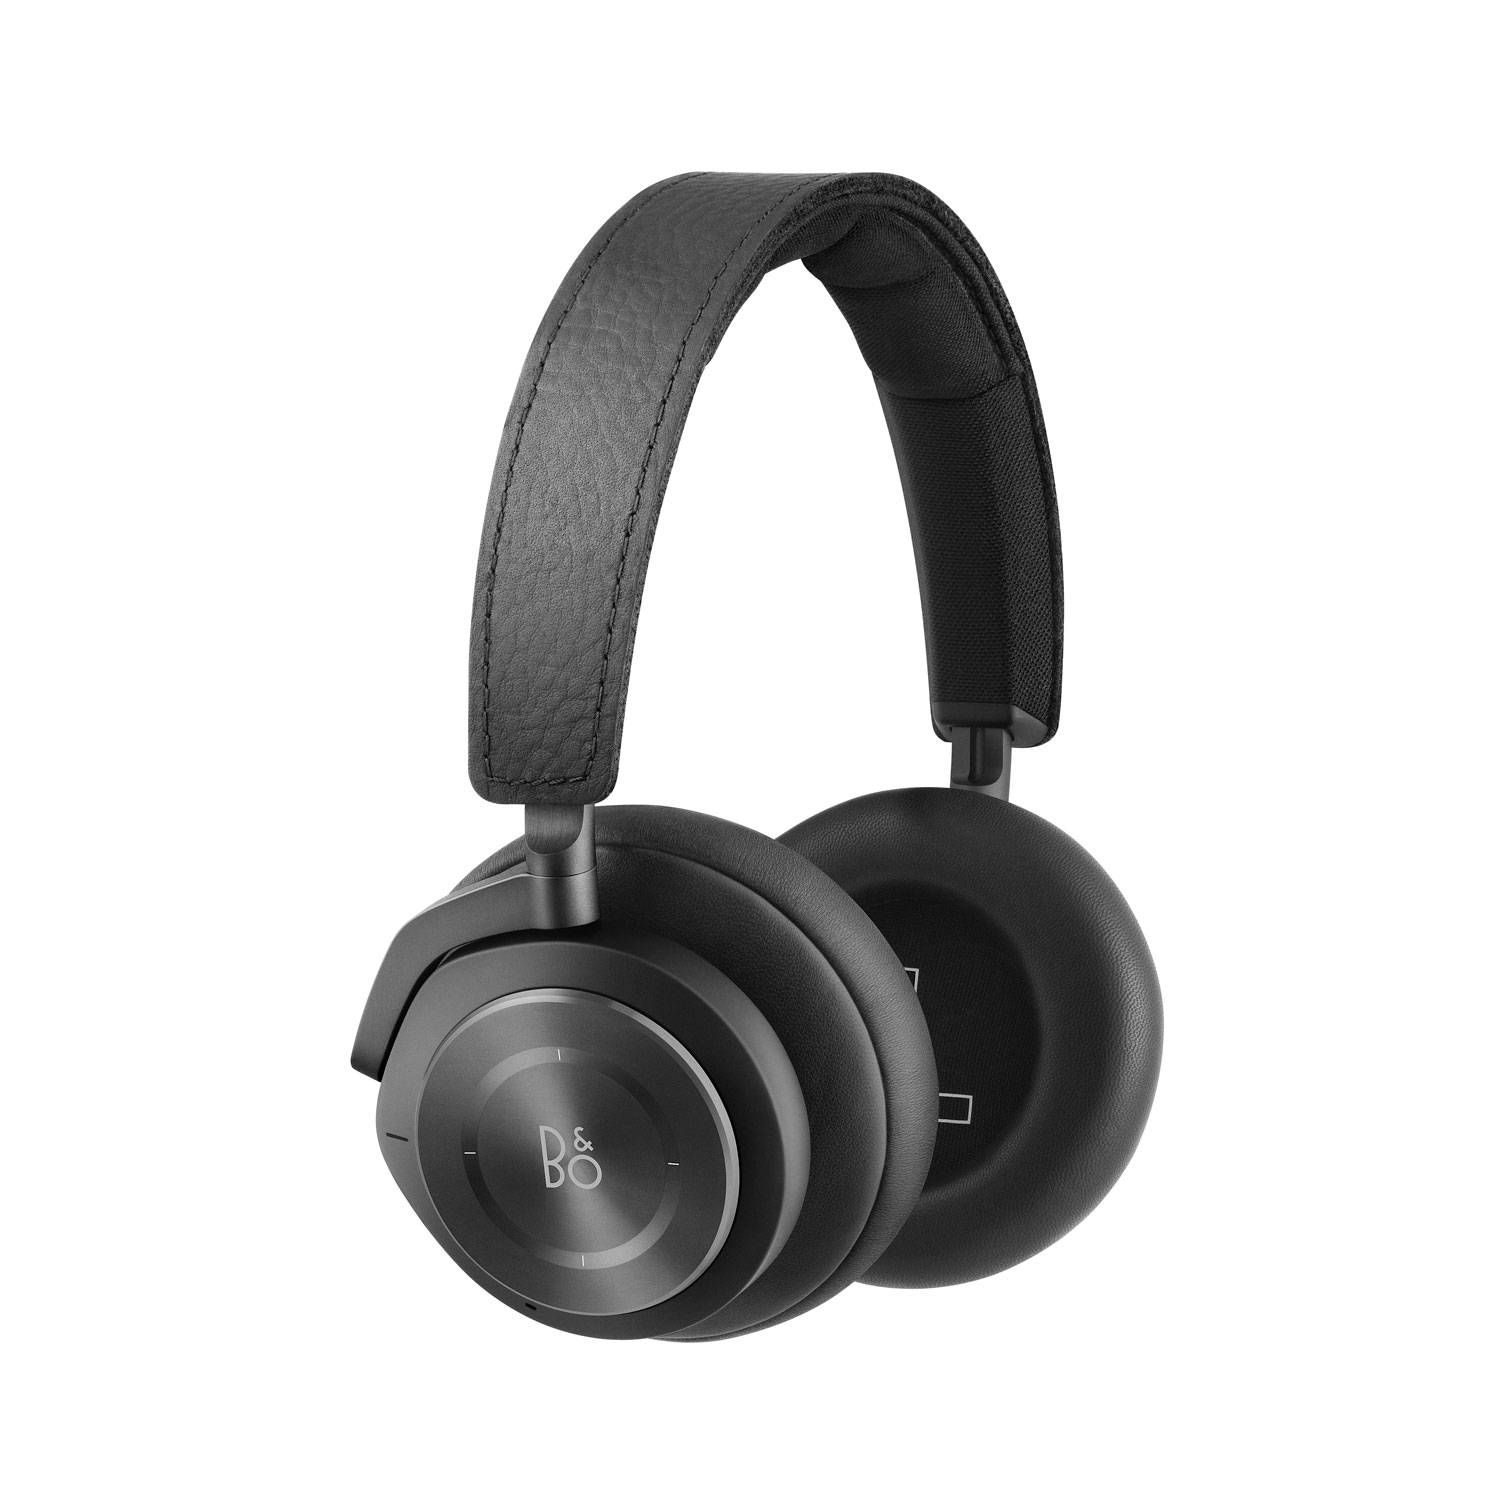 B&O Play BeoPlay H9i Wireless ANC Headphones, Black